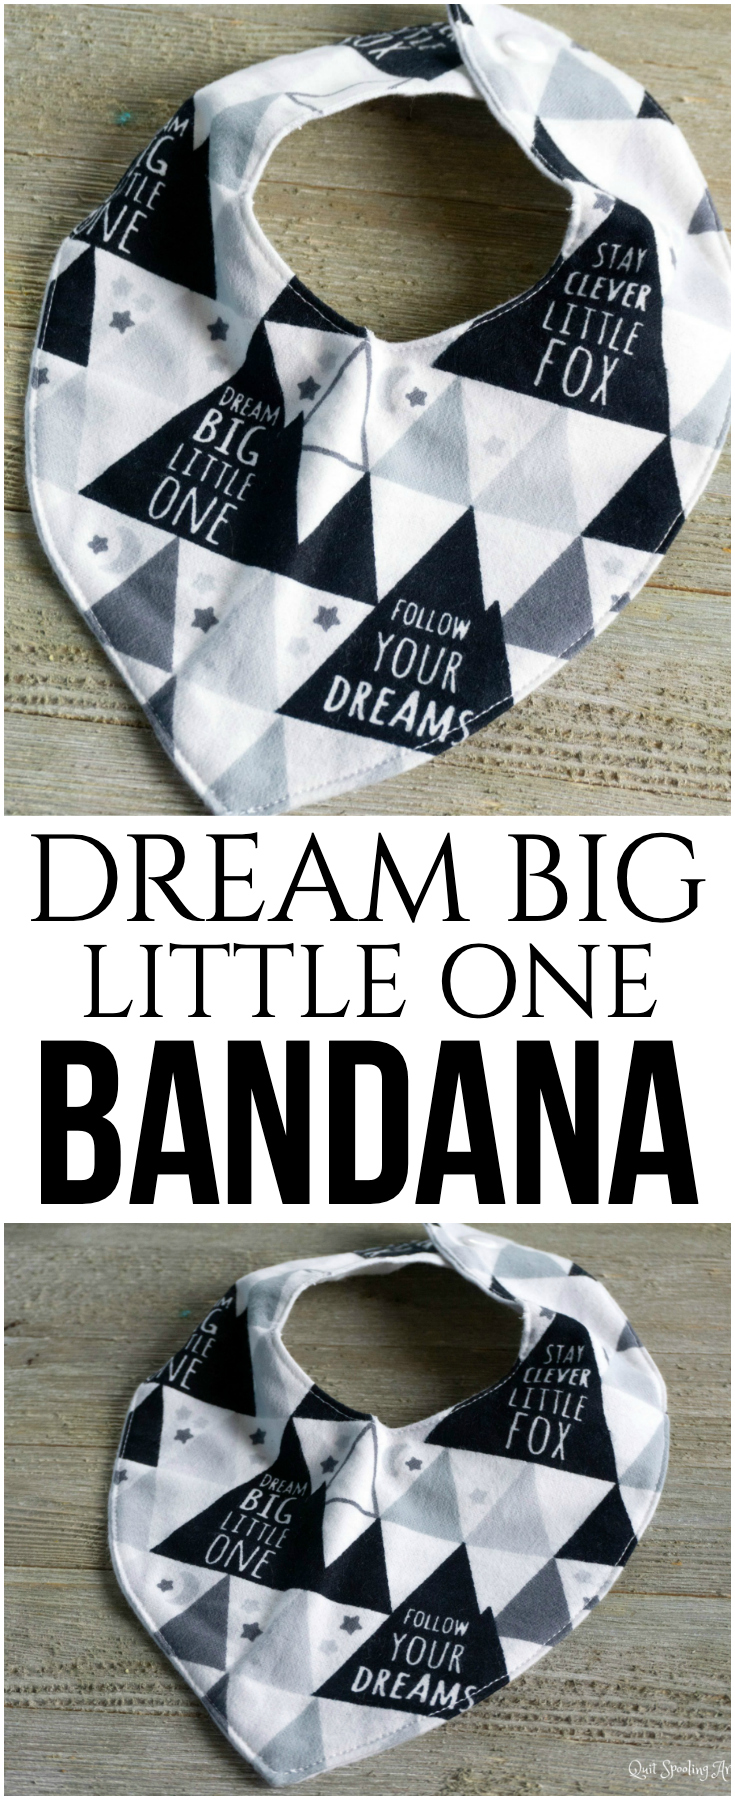 Dream Big Little One Bandana